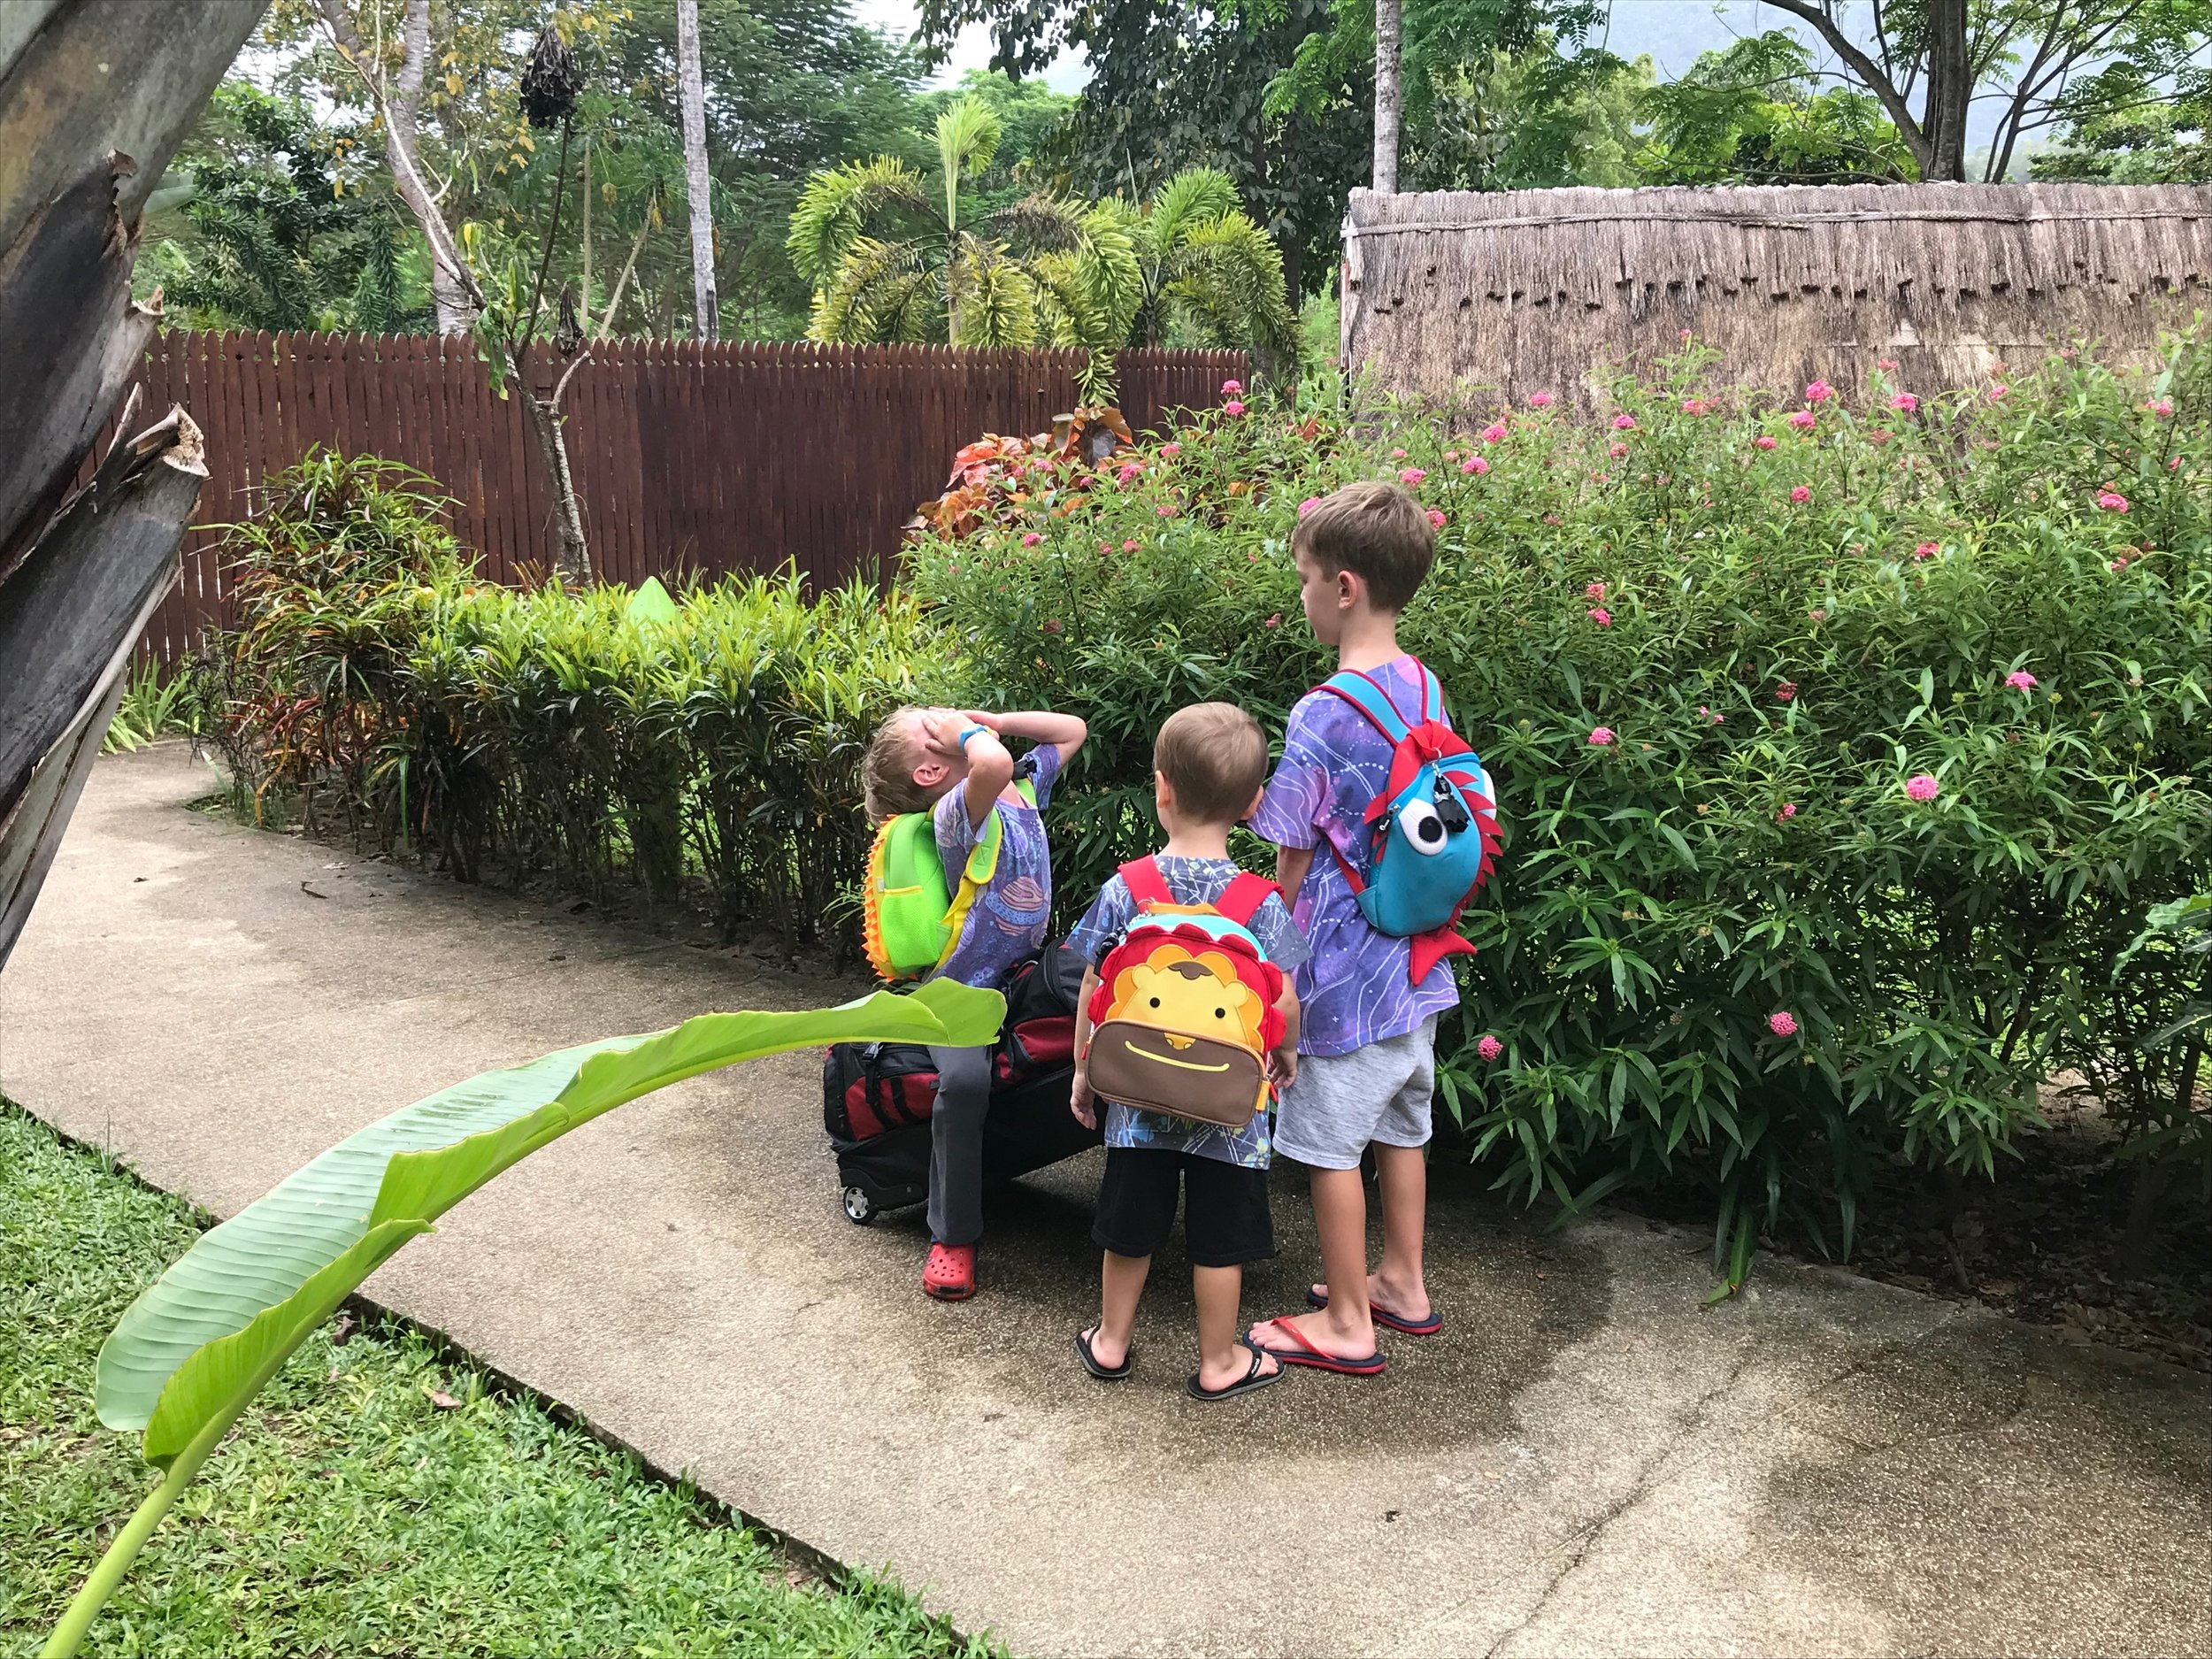 Matchy Matchy - That's right, i treat travel like it's christmas morning and have my kids wear matching clothing while traveling.